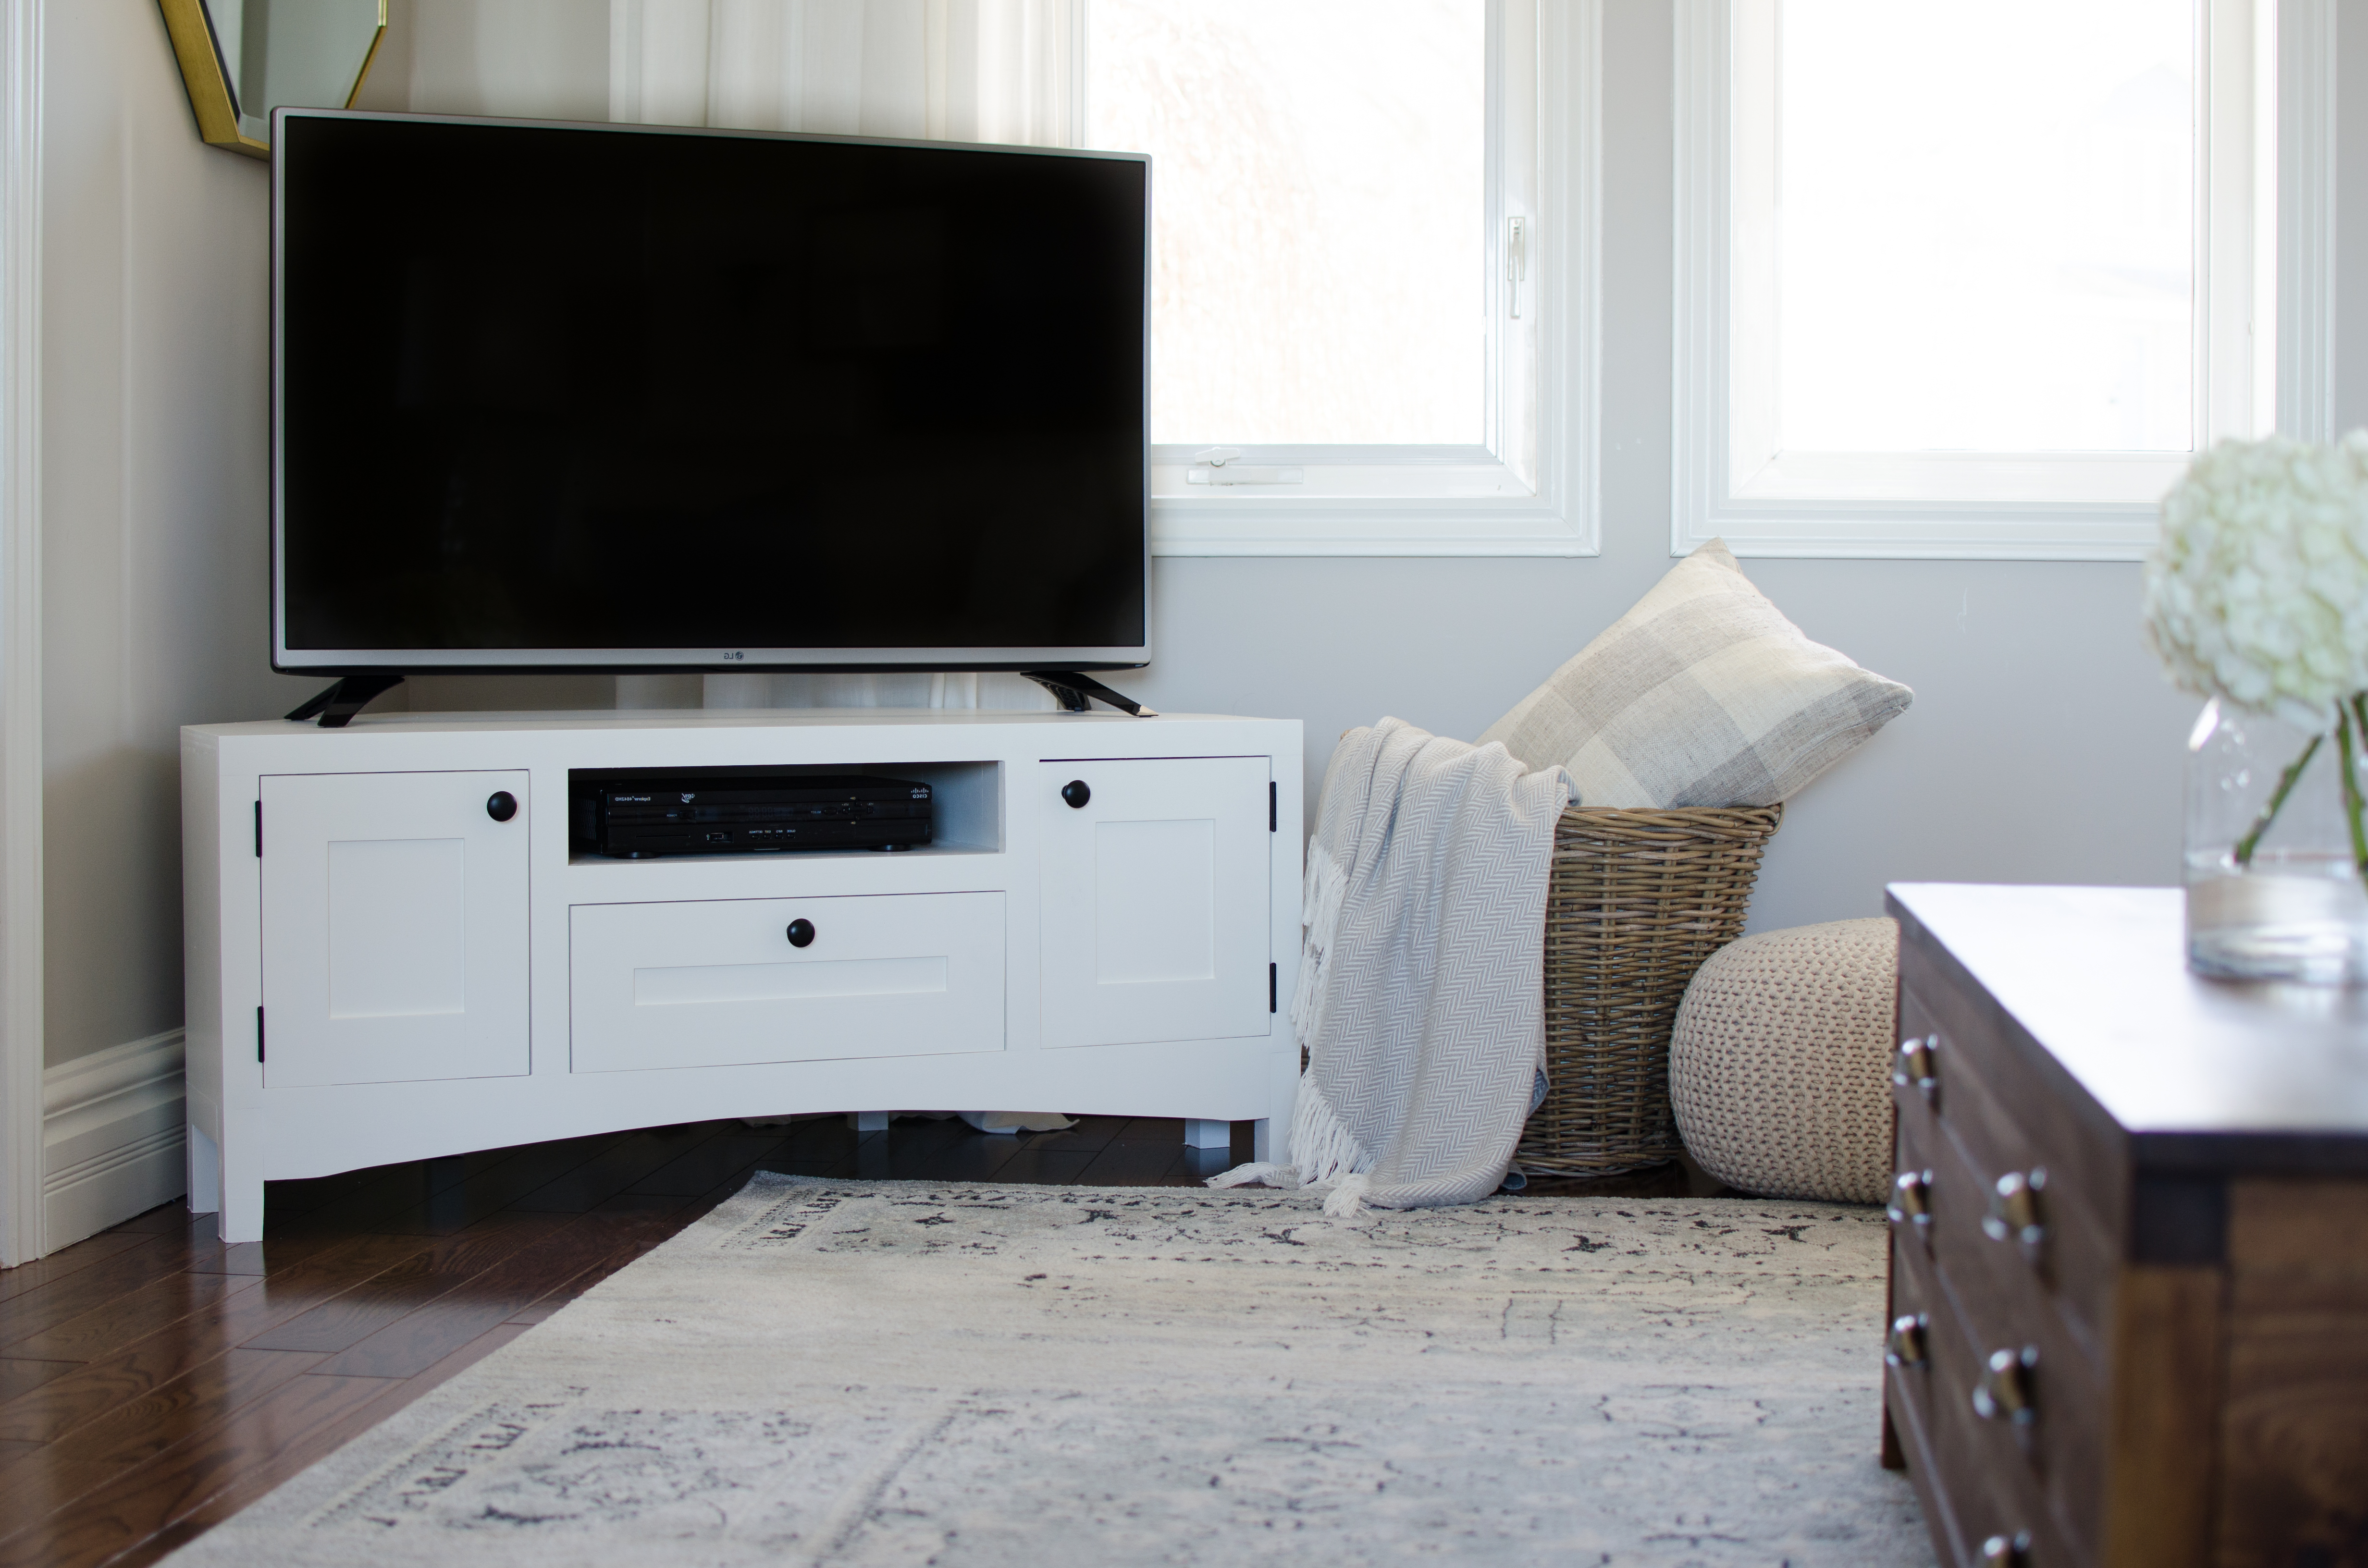 Free Plans – The Diy Hubs In Trendy Corner Tv Stands With Drawers (View 15 of 20)